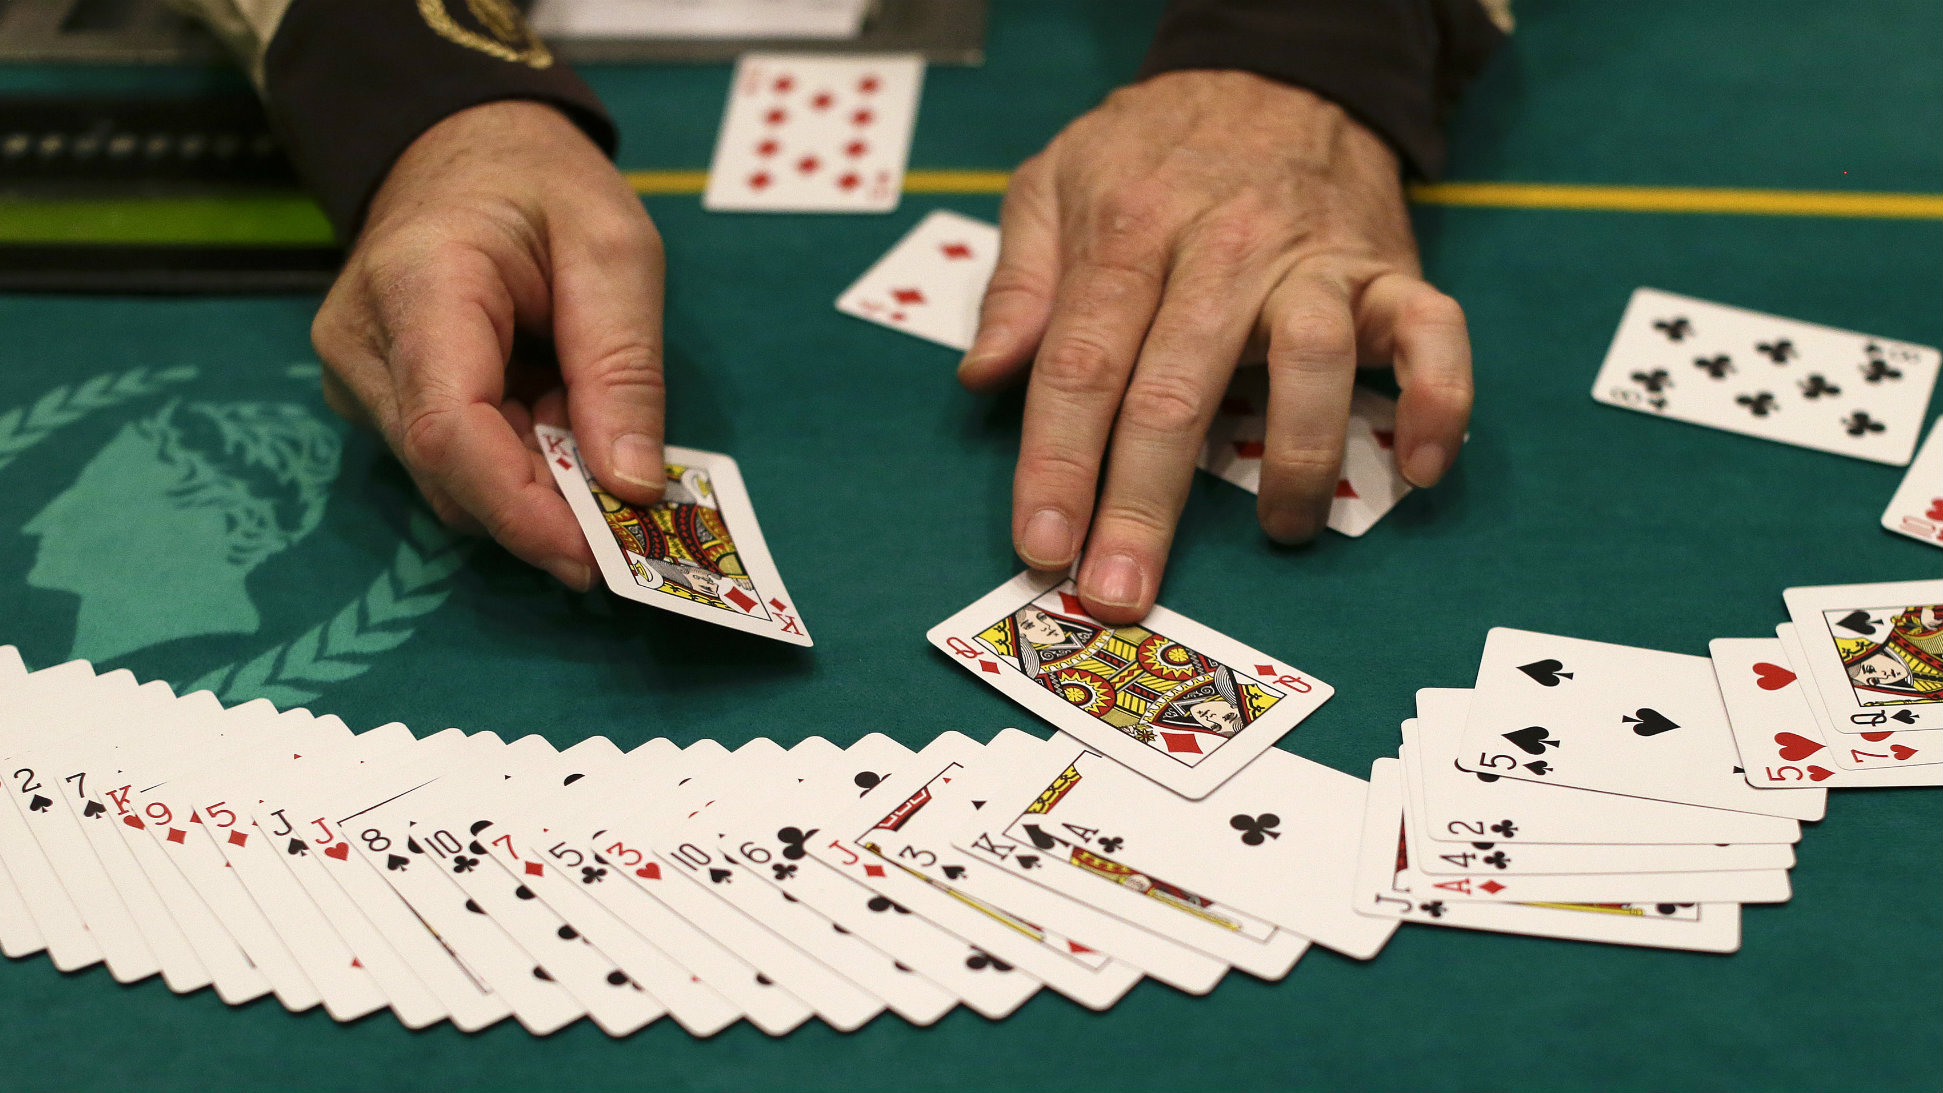 Jeff Martos resets a deck of cards during a break in poker play at Caesar's Palace, Wednesday, Feb. 27, 2013, in Las Vegas.